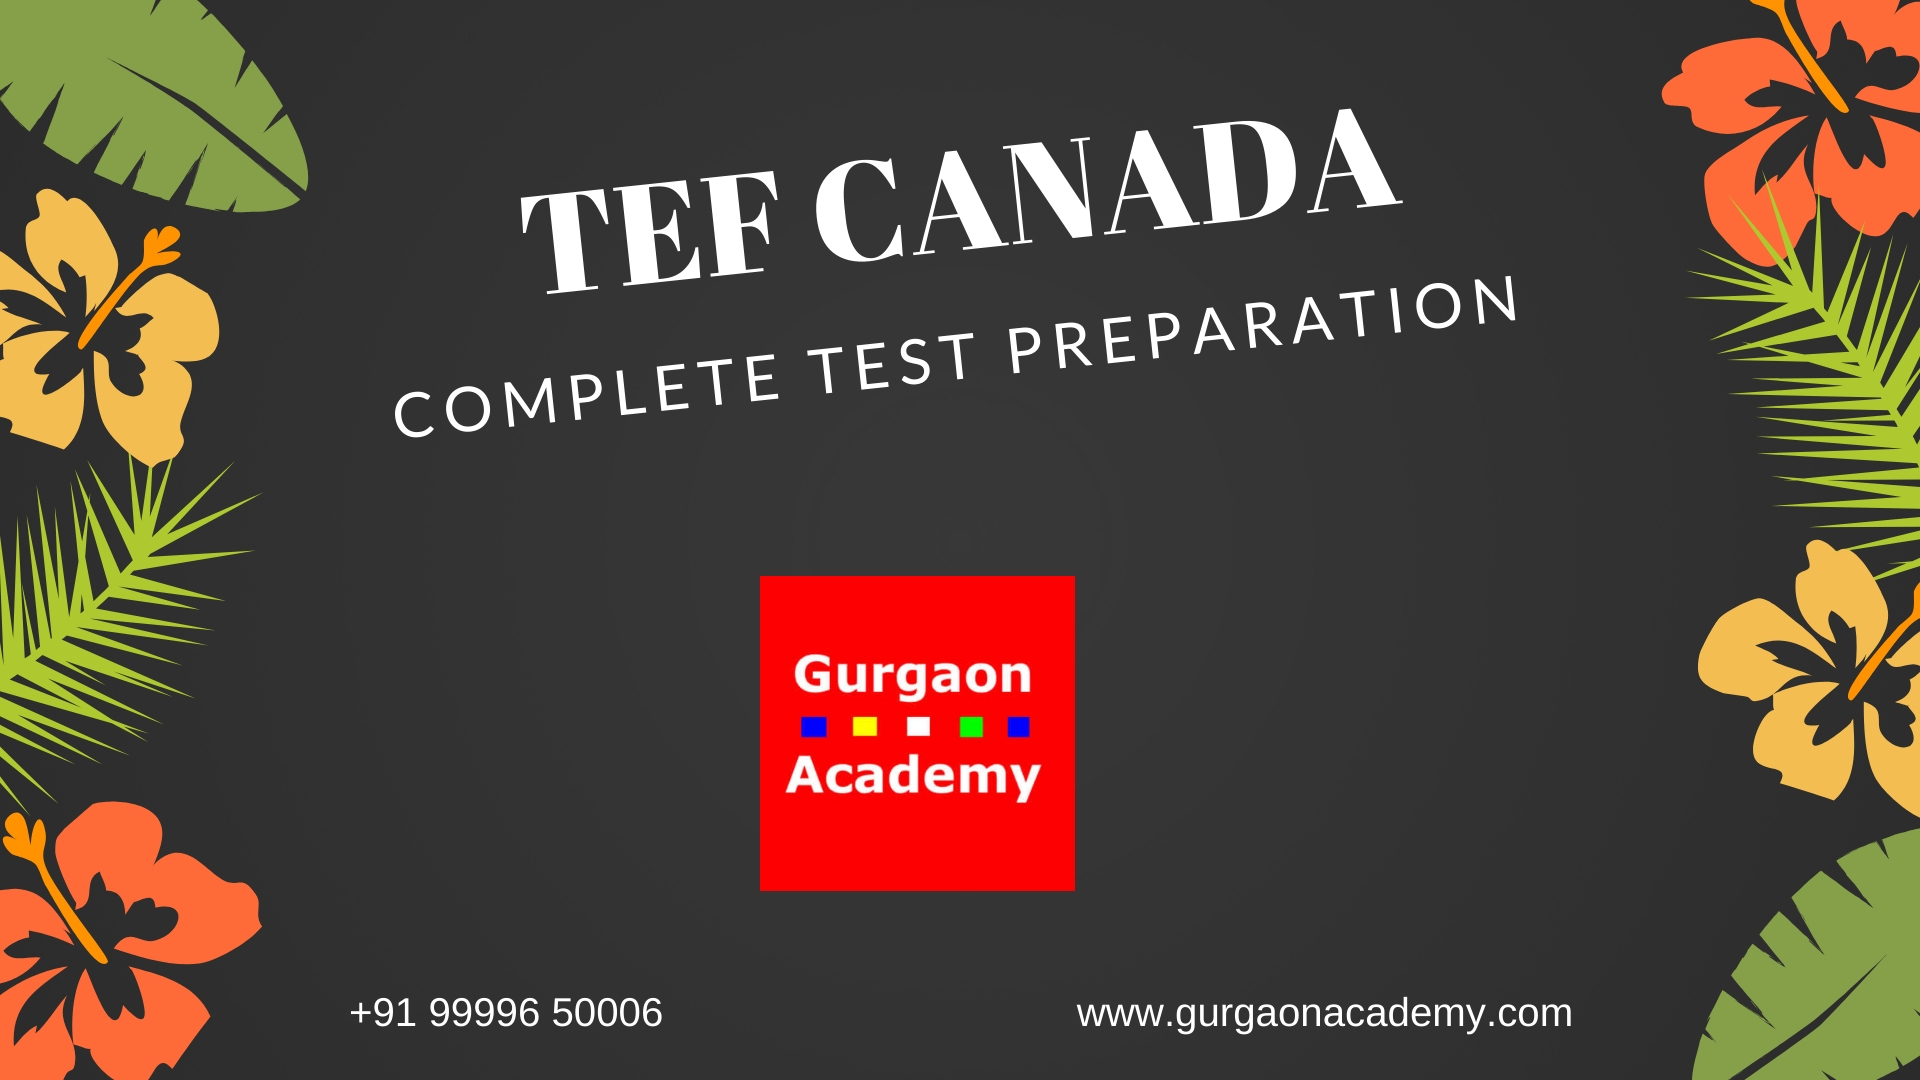 Best-Centre-TEF-CANADA-Test-Preparation-French-Language-Coaching-Institute-Classes-Learning-Delhi